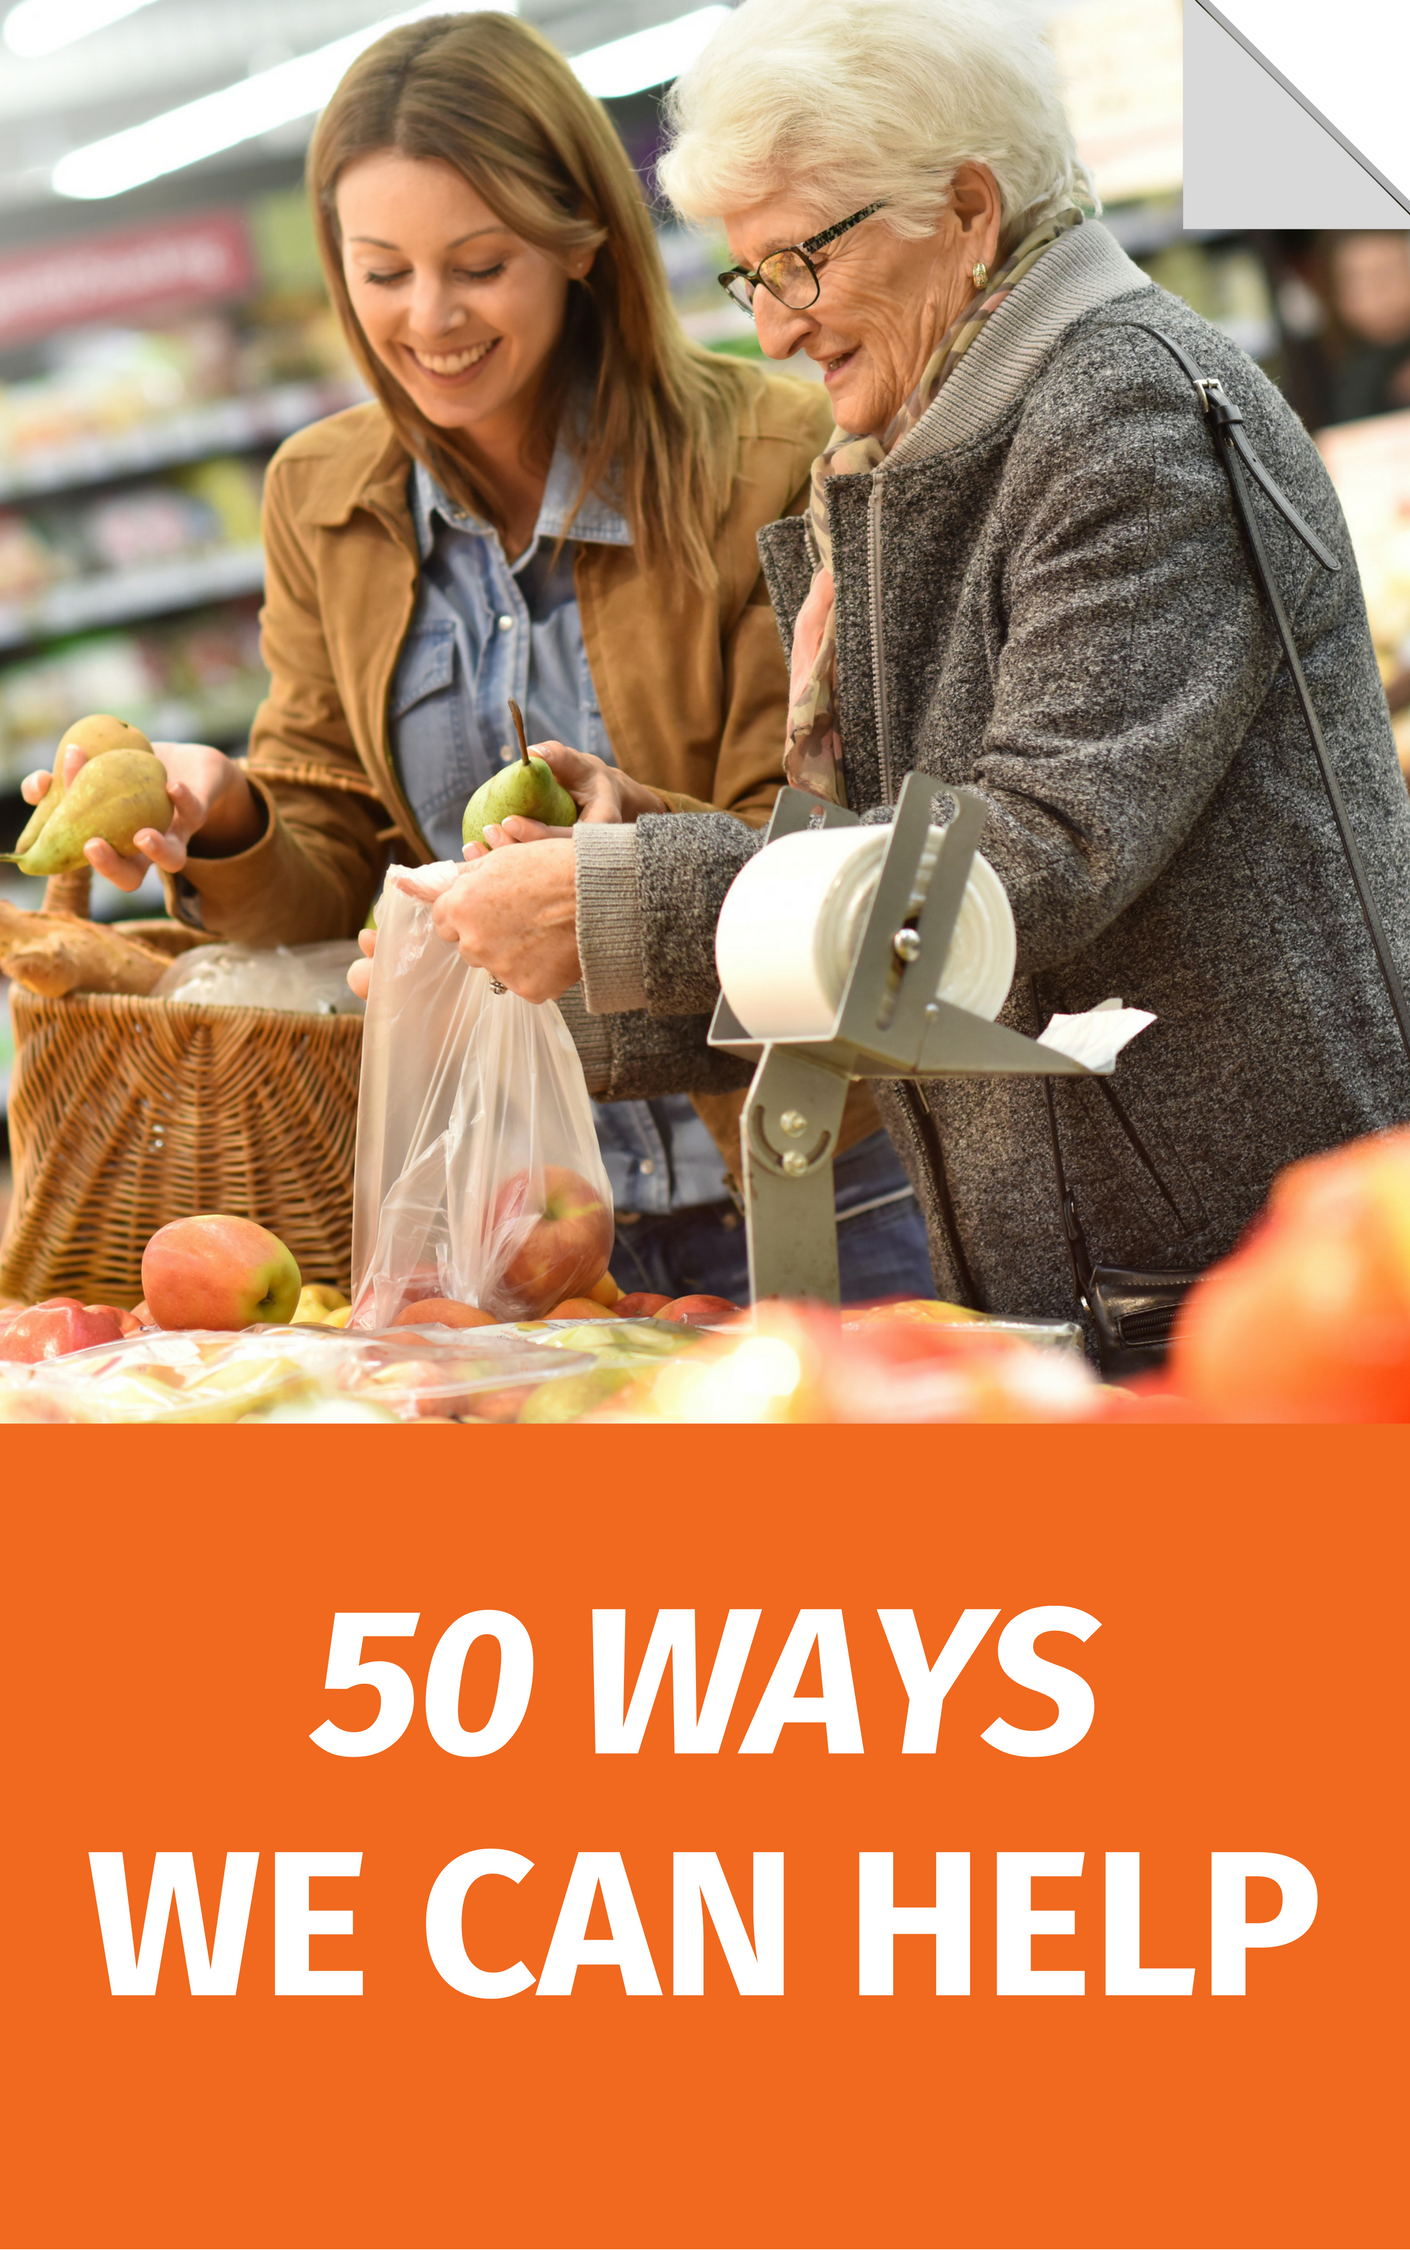 50 Ways We Can Help